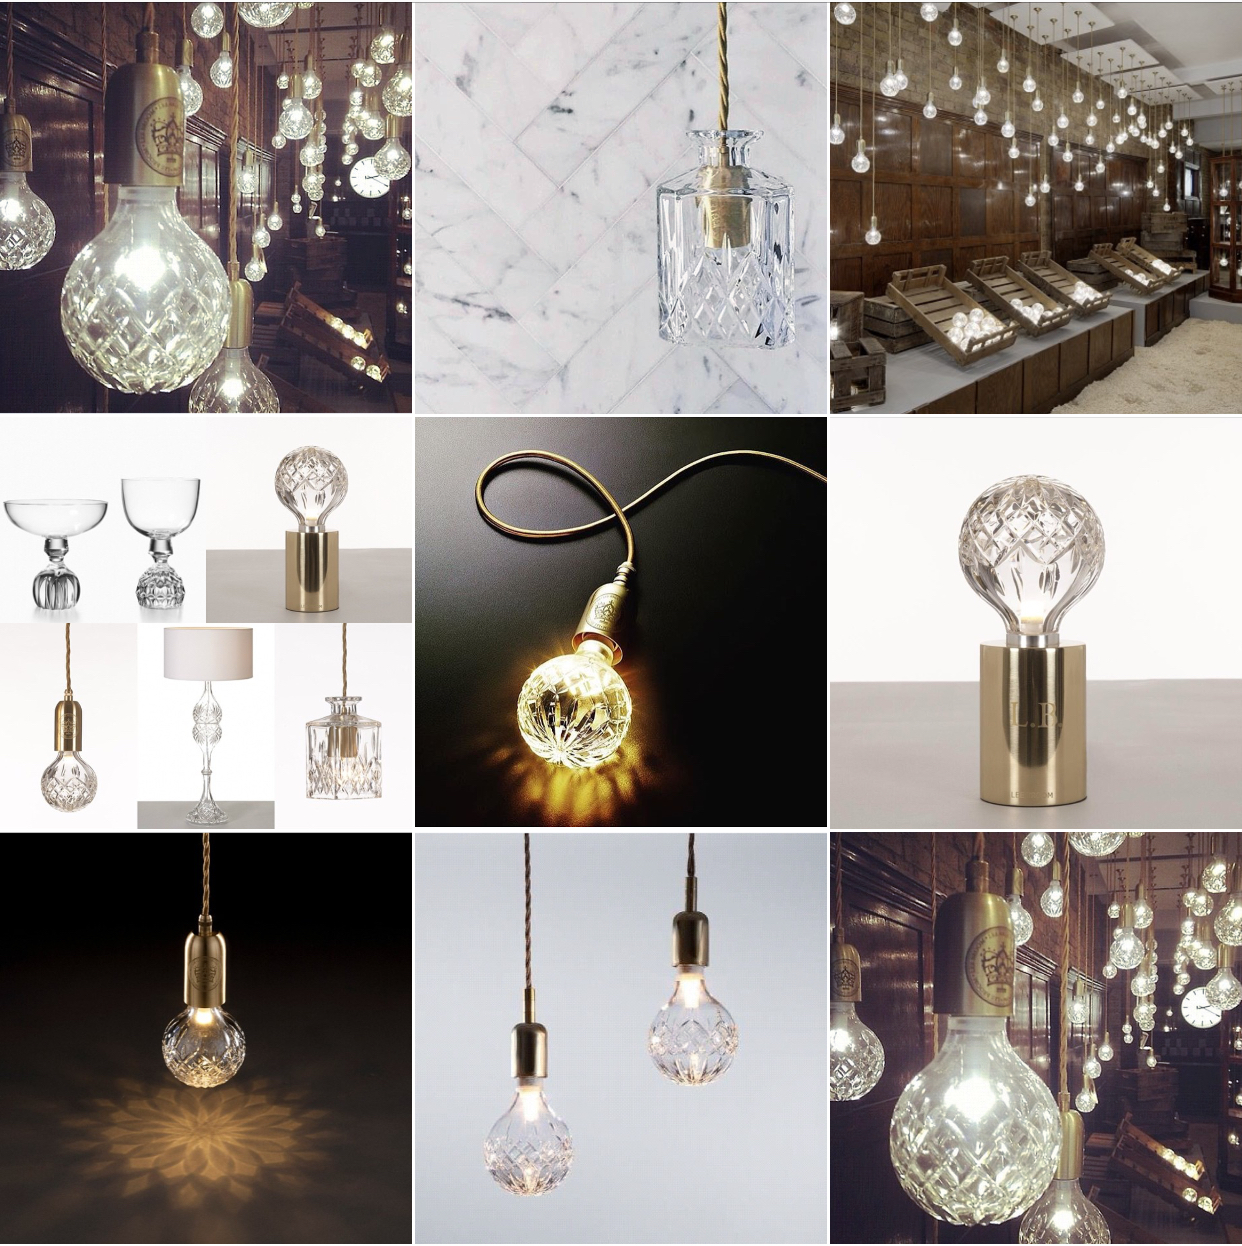 The Crystal Bulb light by Brit designer Lee Broom, 2012